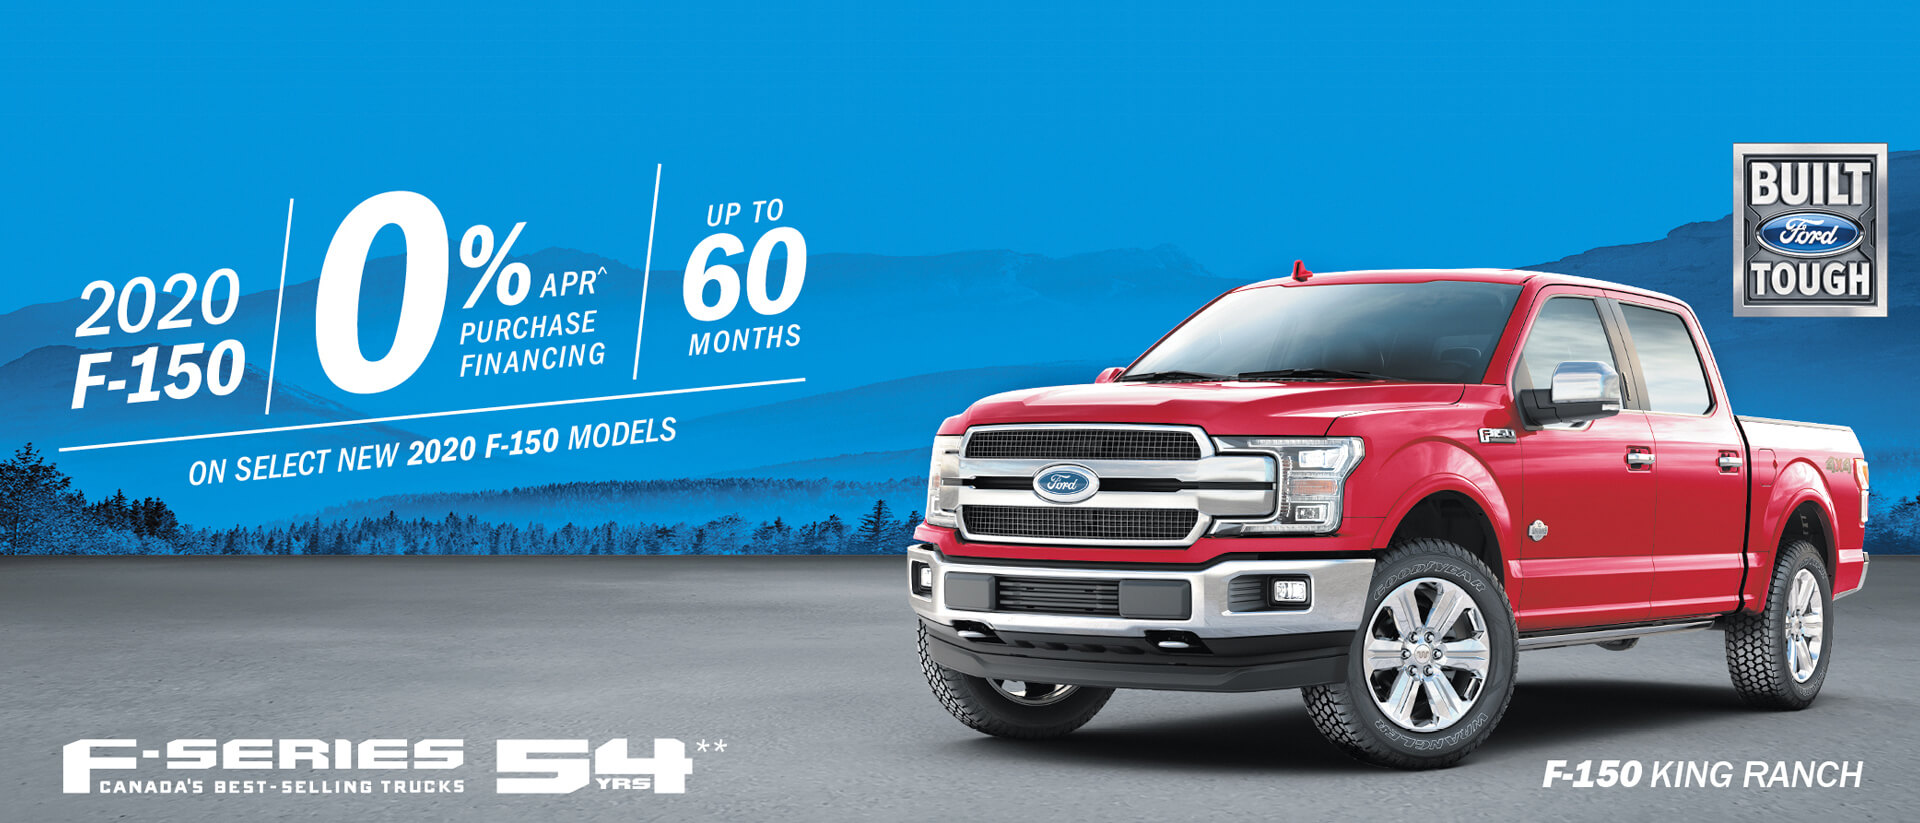 2020 February Ford Incentive Offer